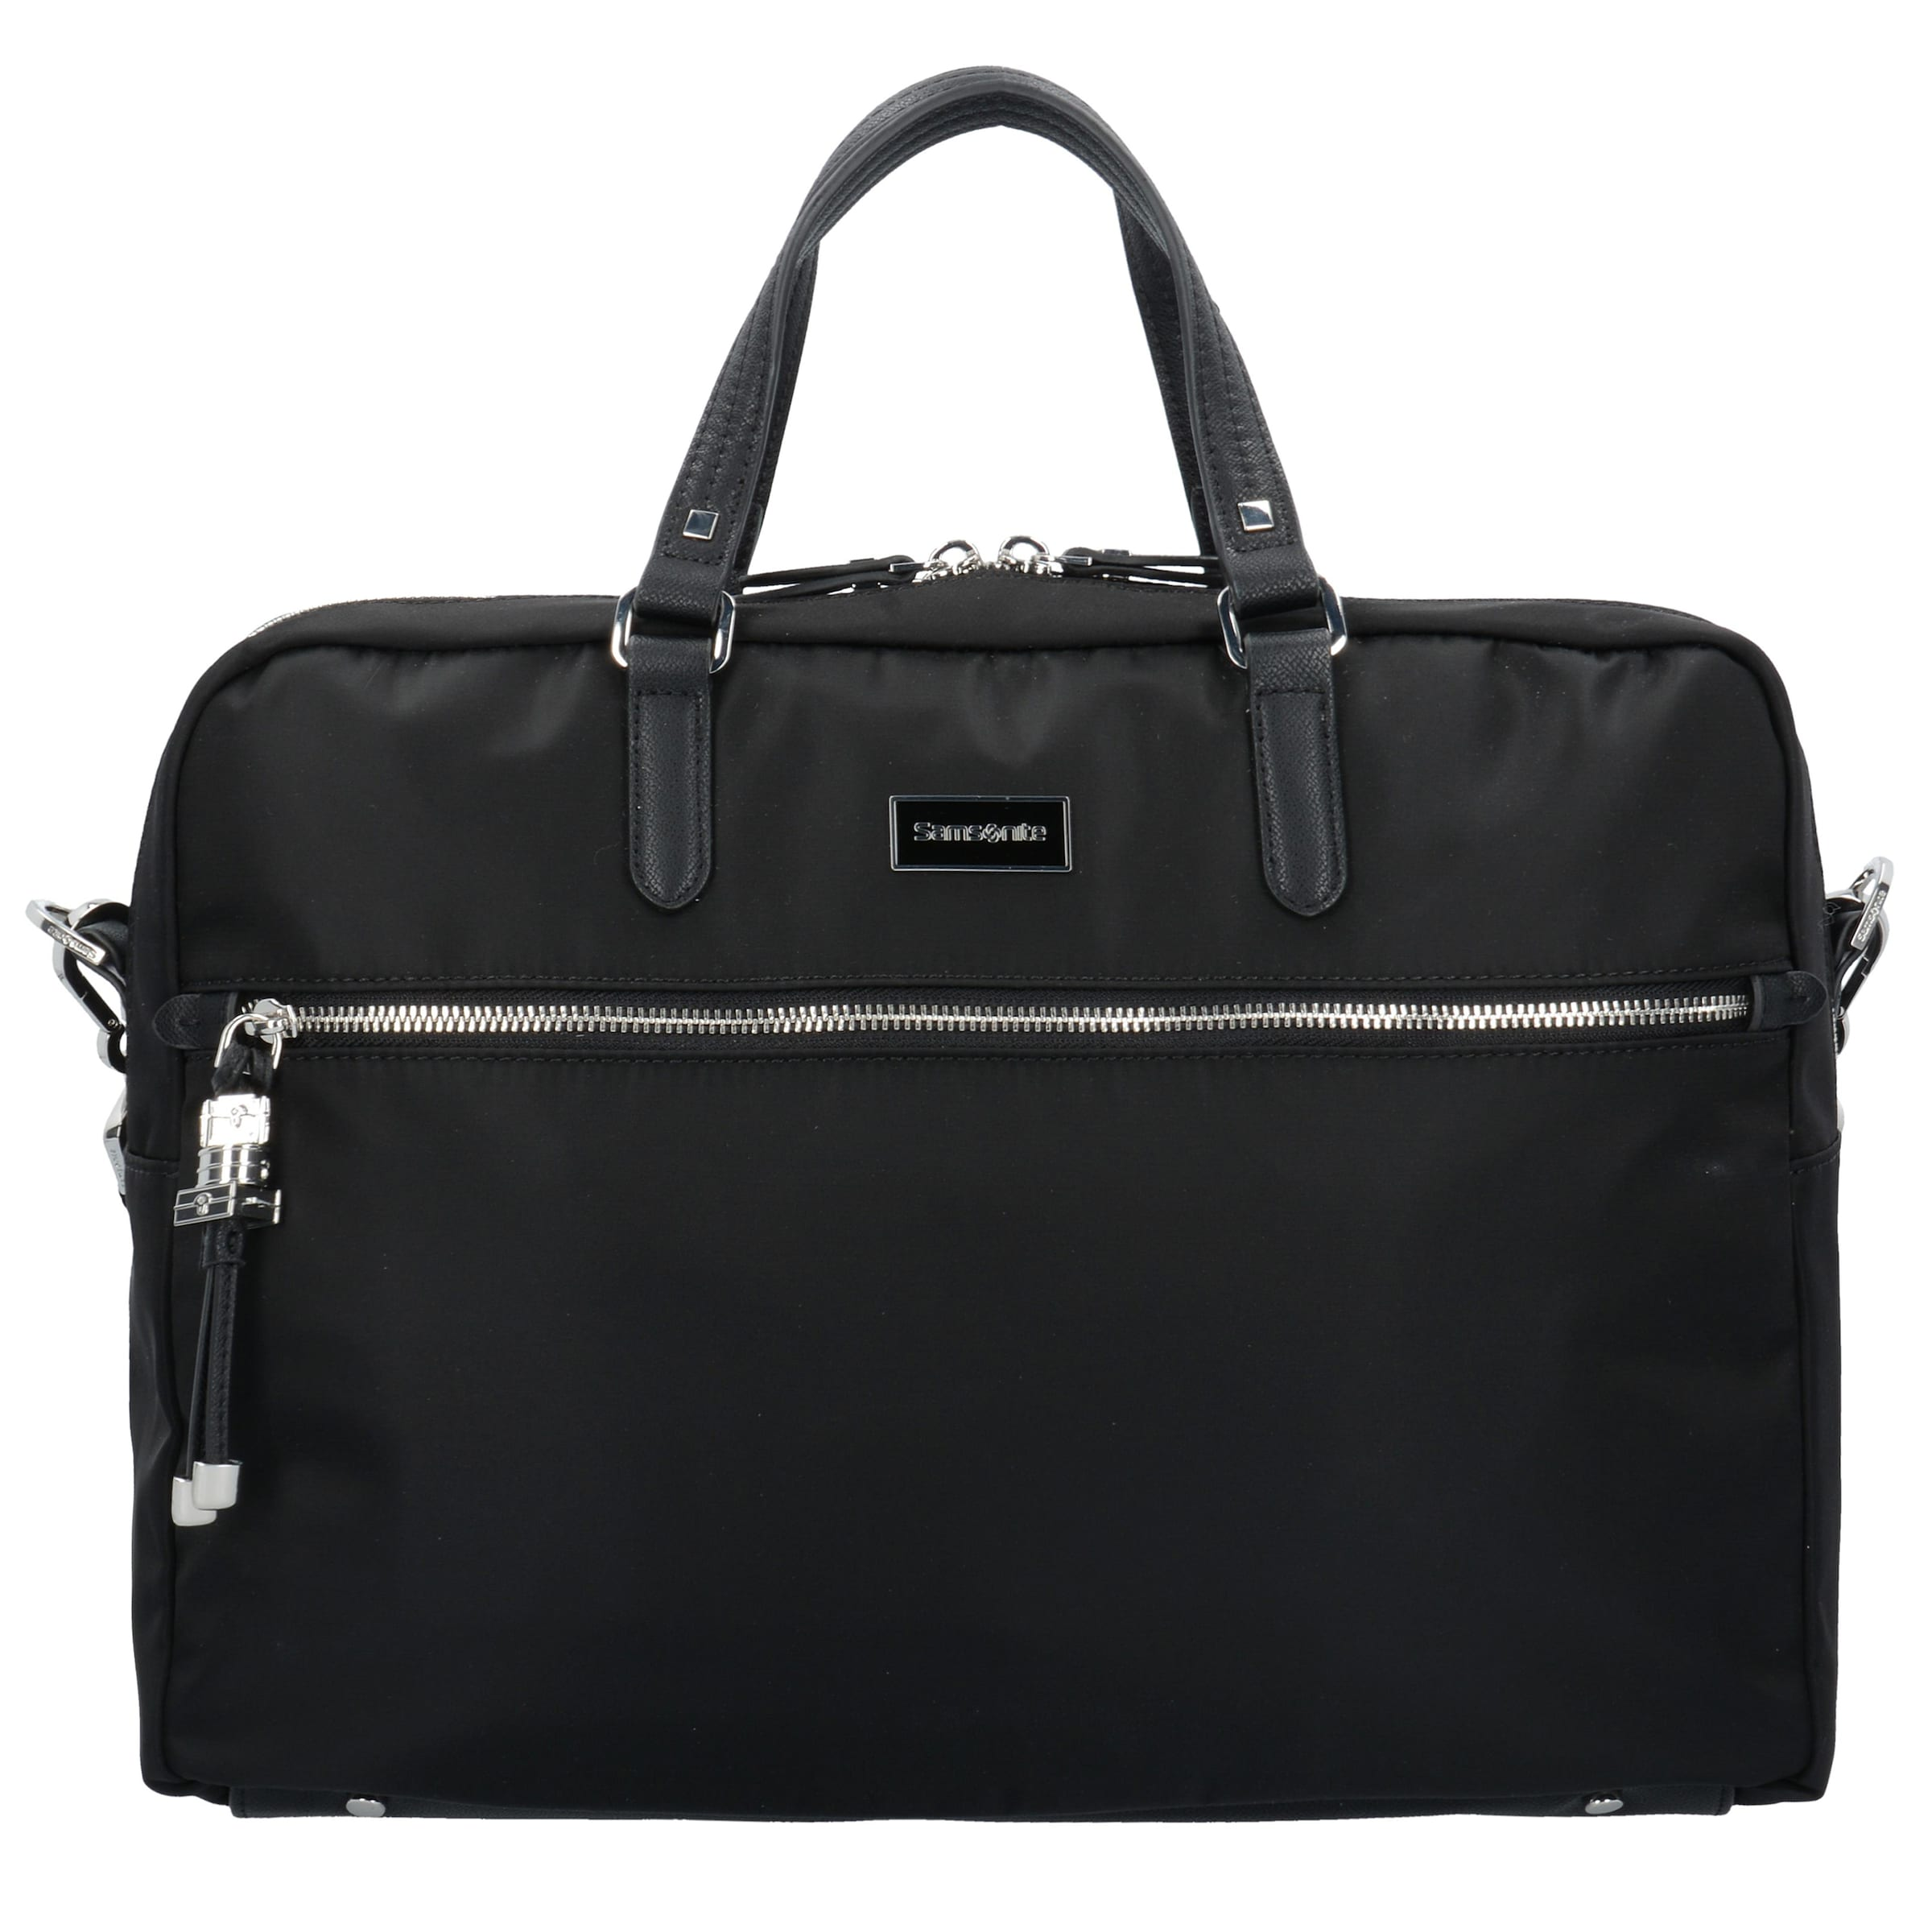 Biz Businesstasche Cm Grau Karissa Laptopfach Samsonite In 35 PZOwiTkXu